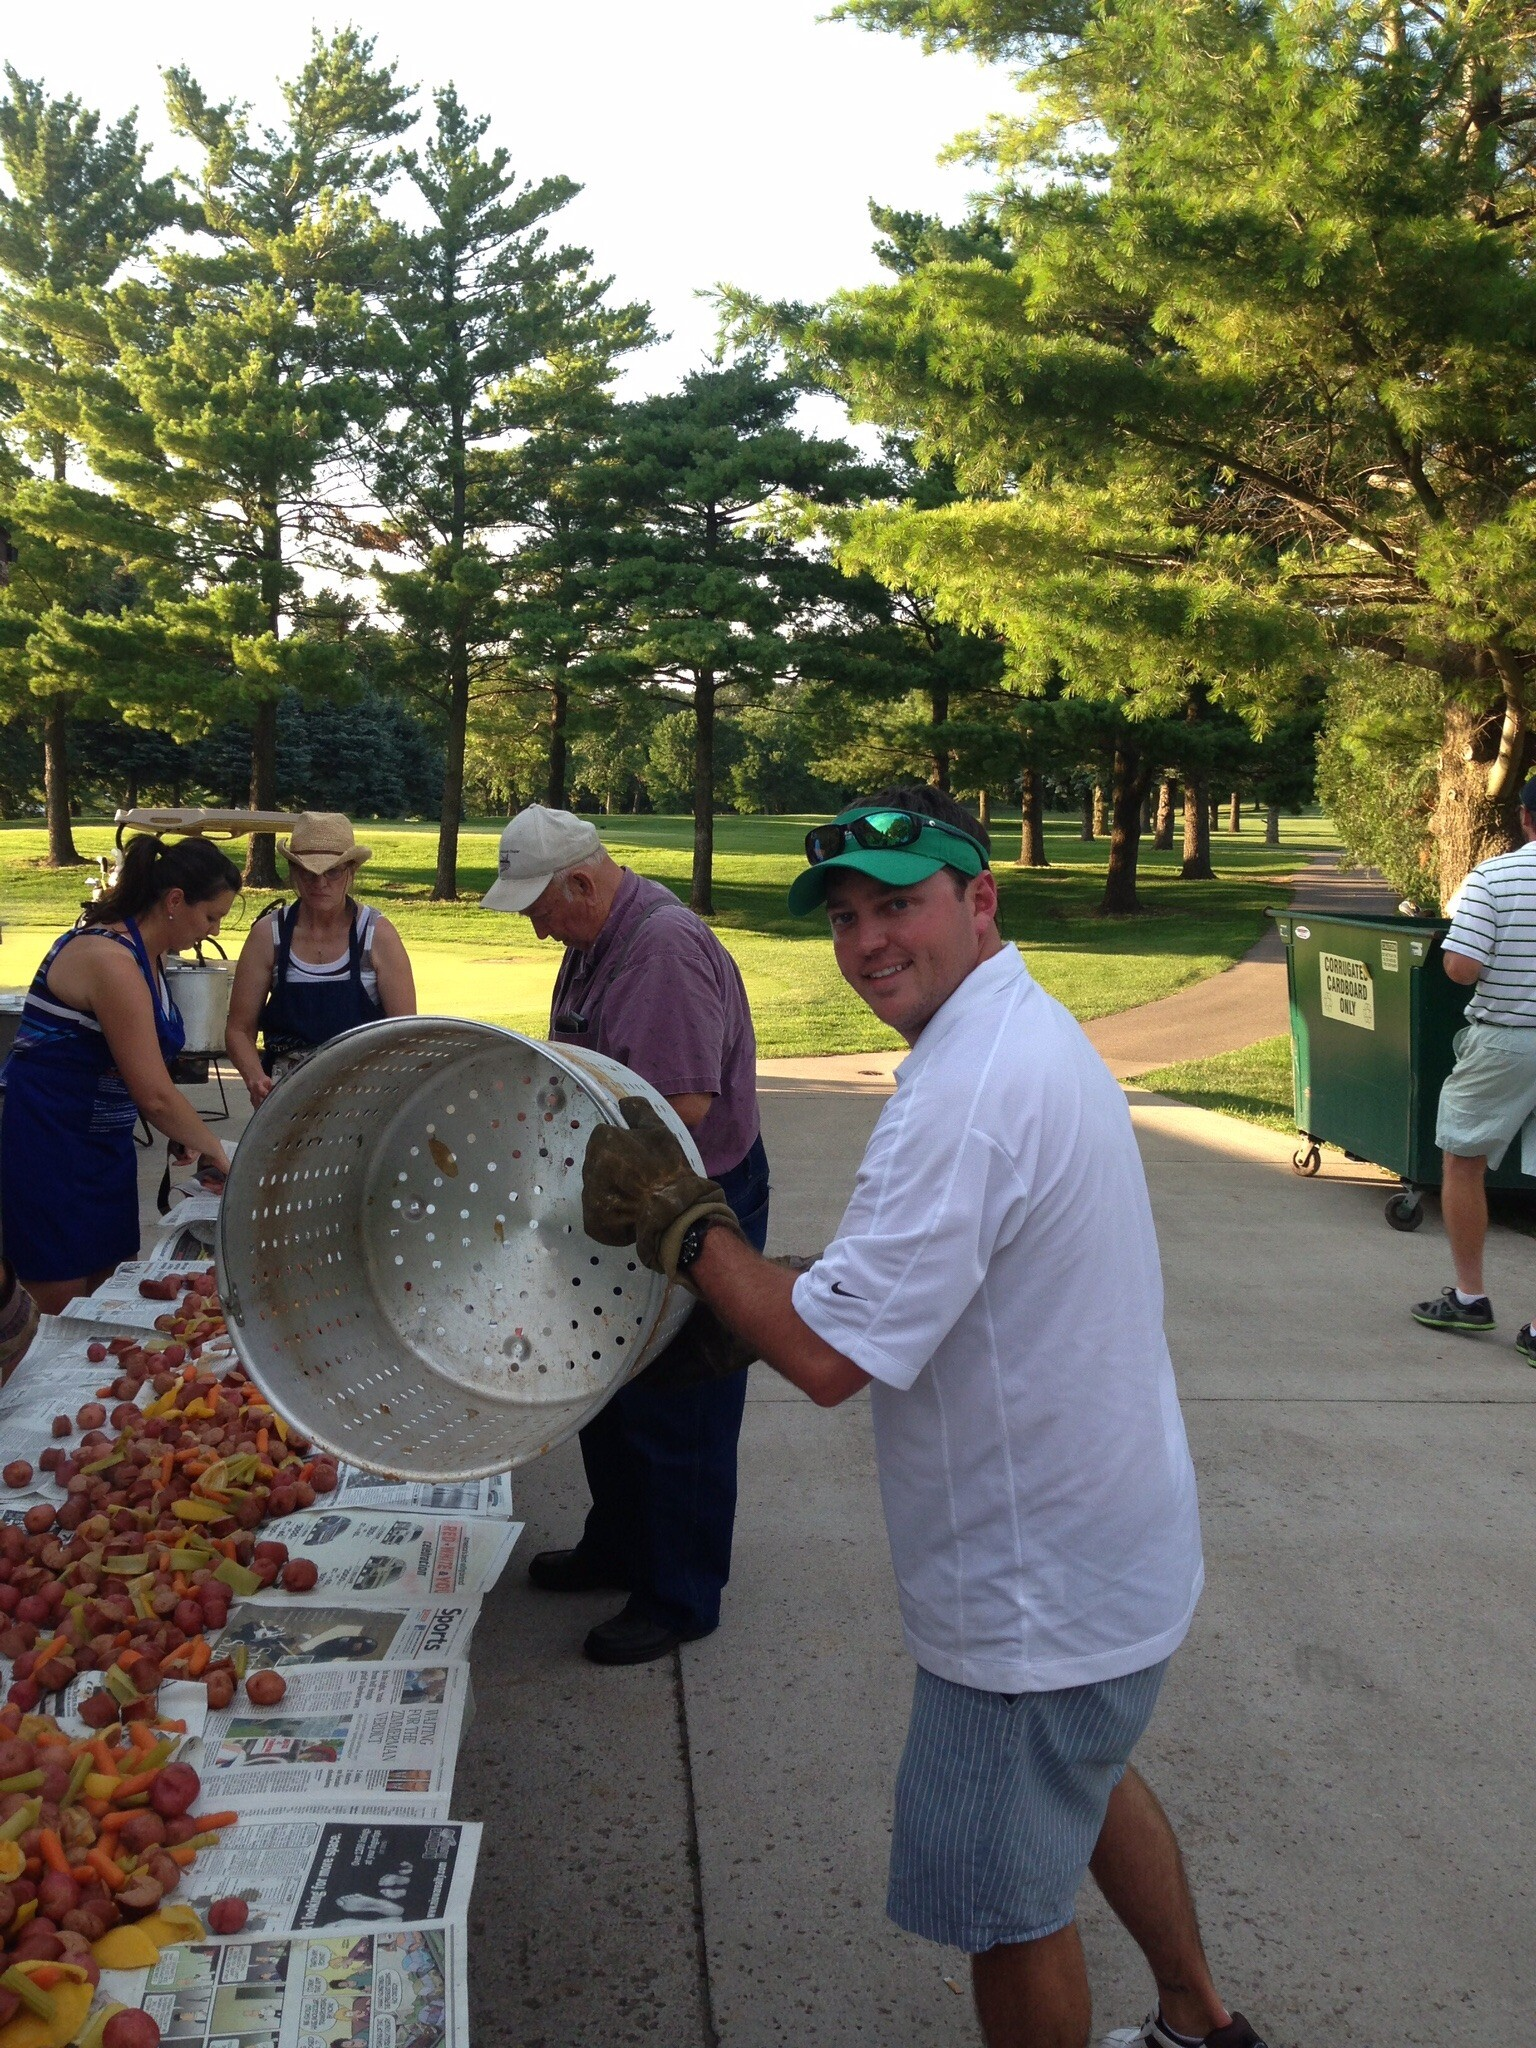 Kenny serving some boiled shrimp at Argo's annual Winnebago shrimp boil in Iowa.